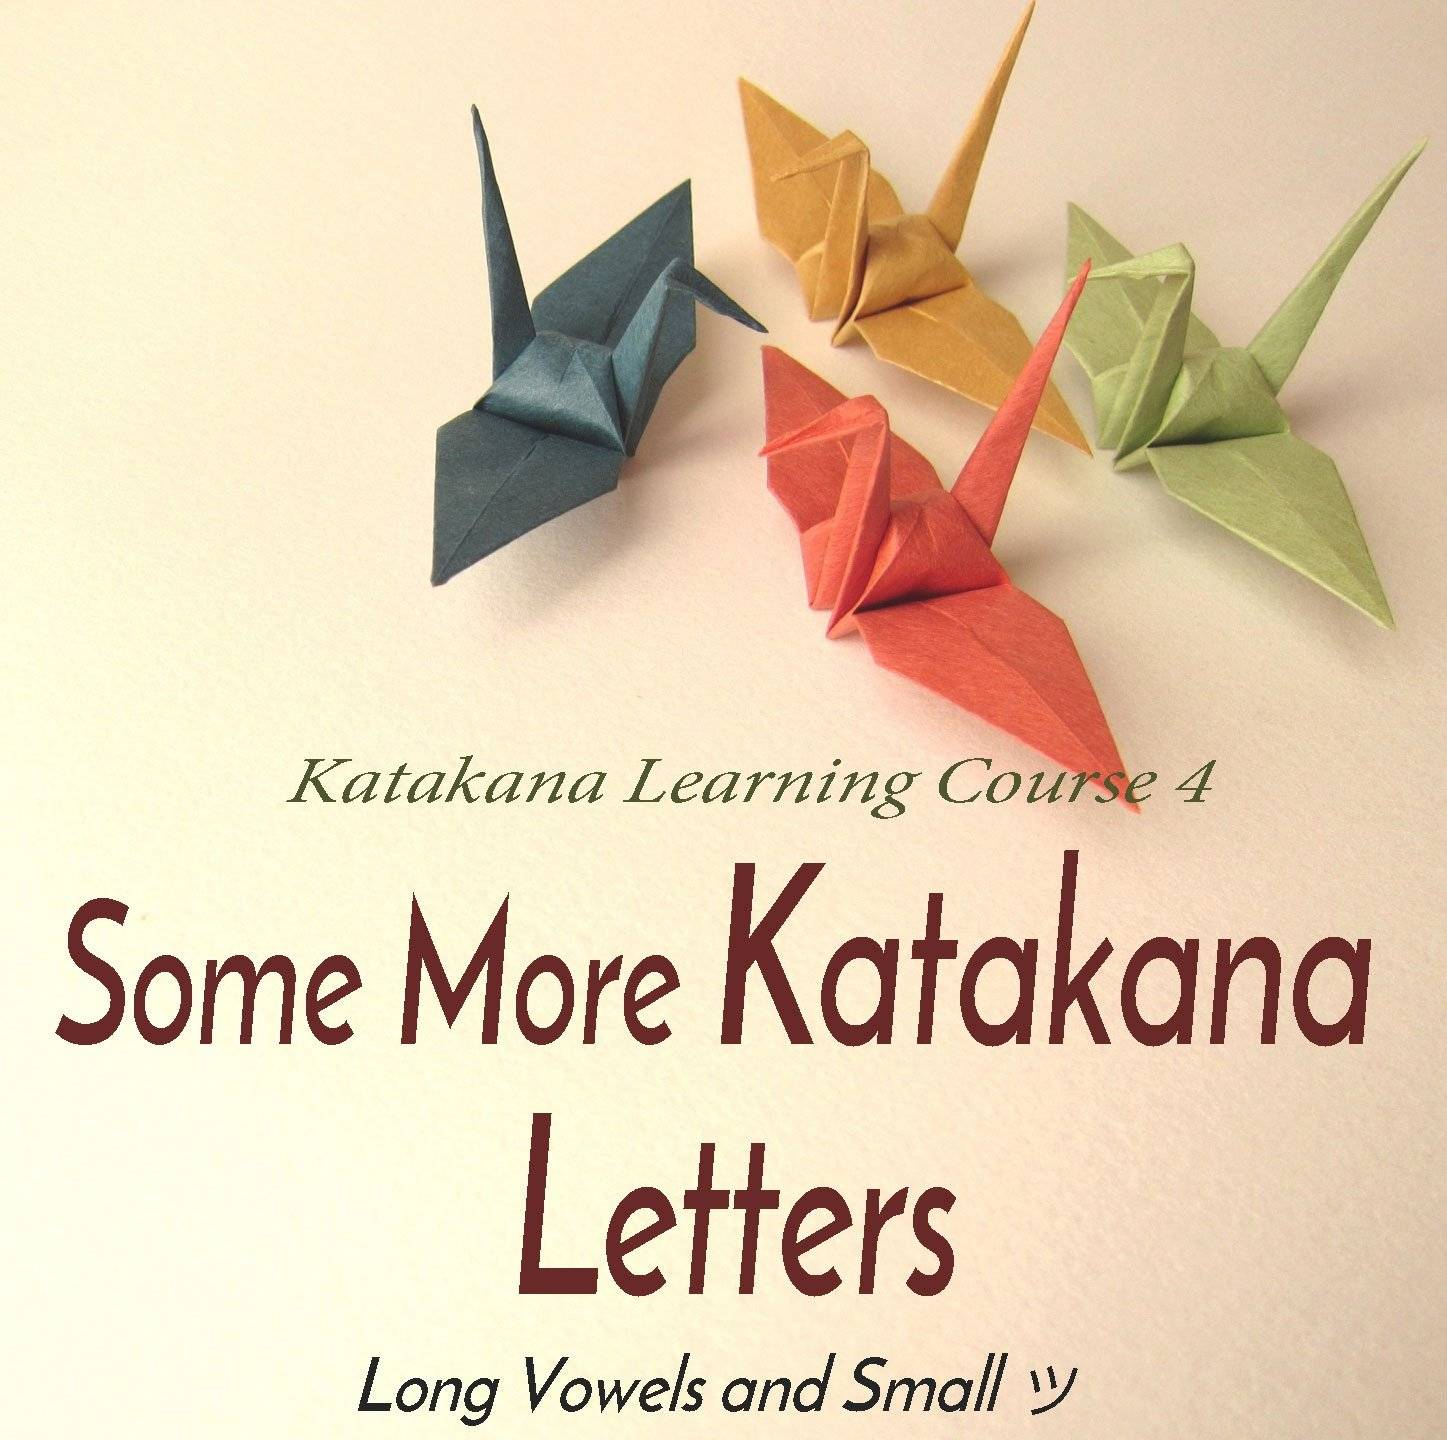 Some More Katakana Letters